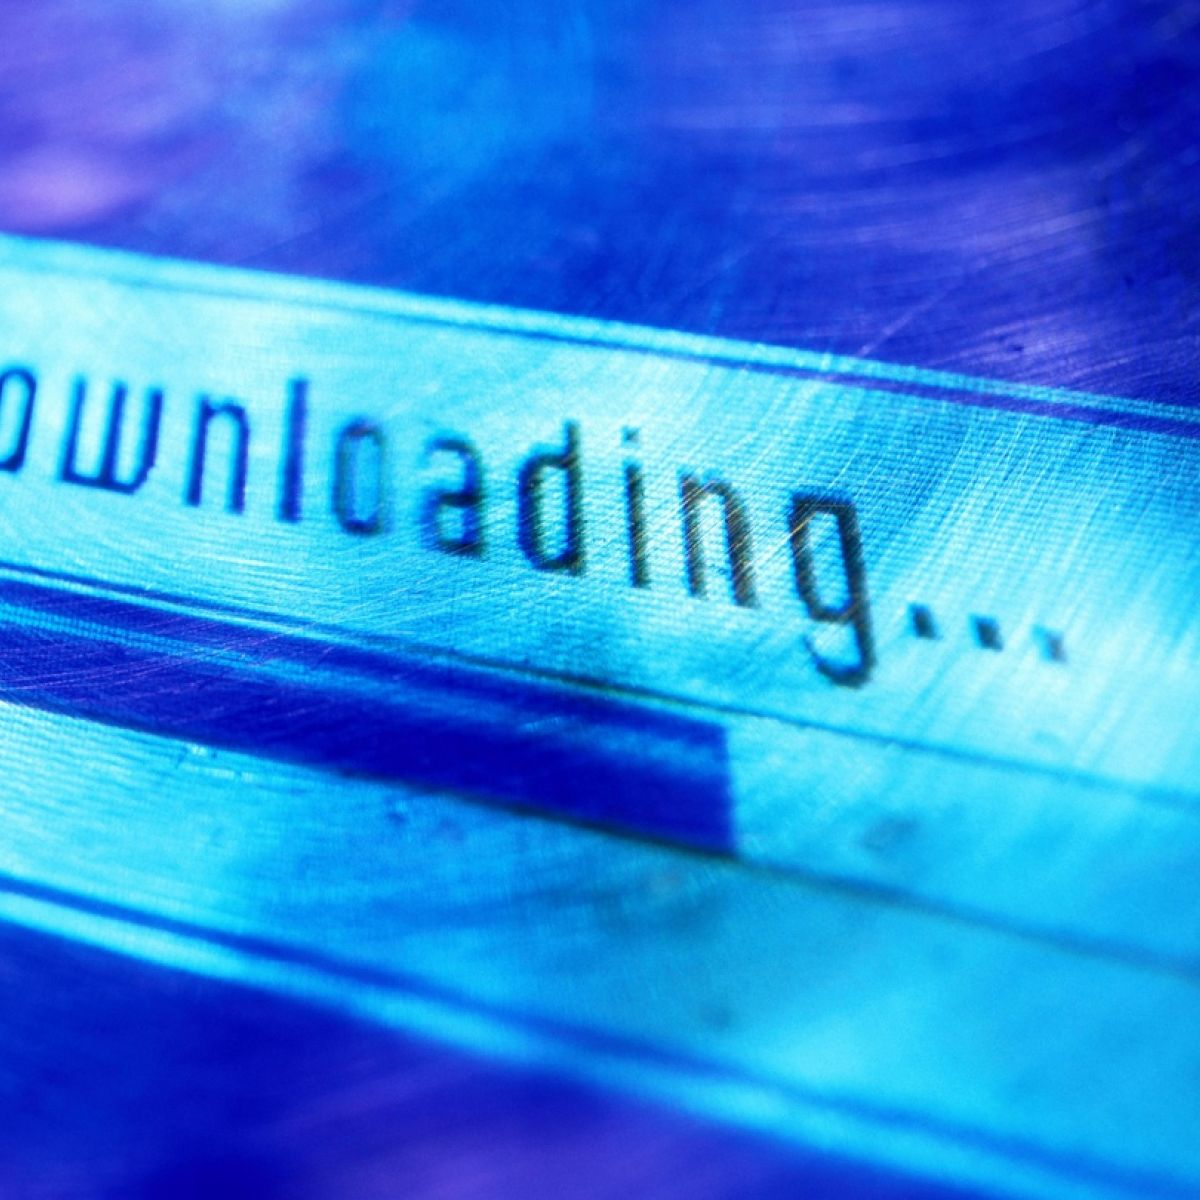 Q&A: What\'s the story on blocking streaming sites?